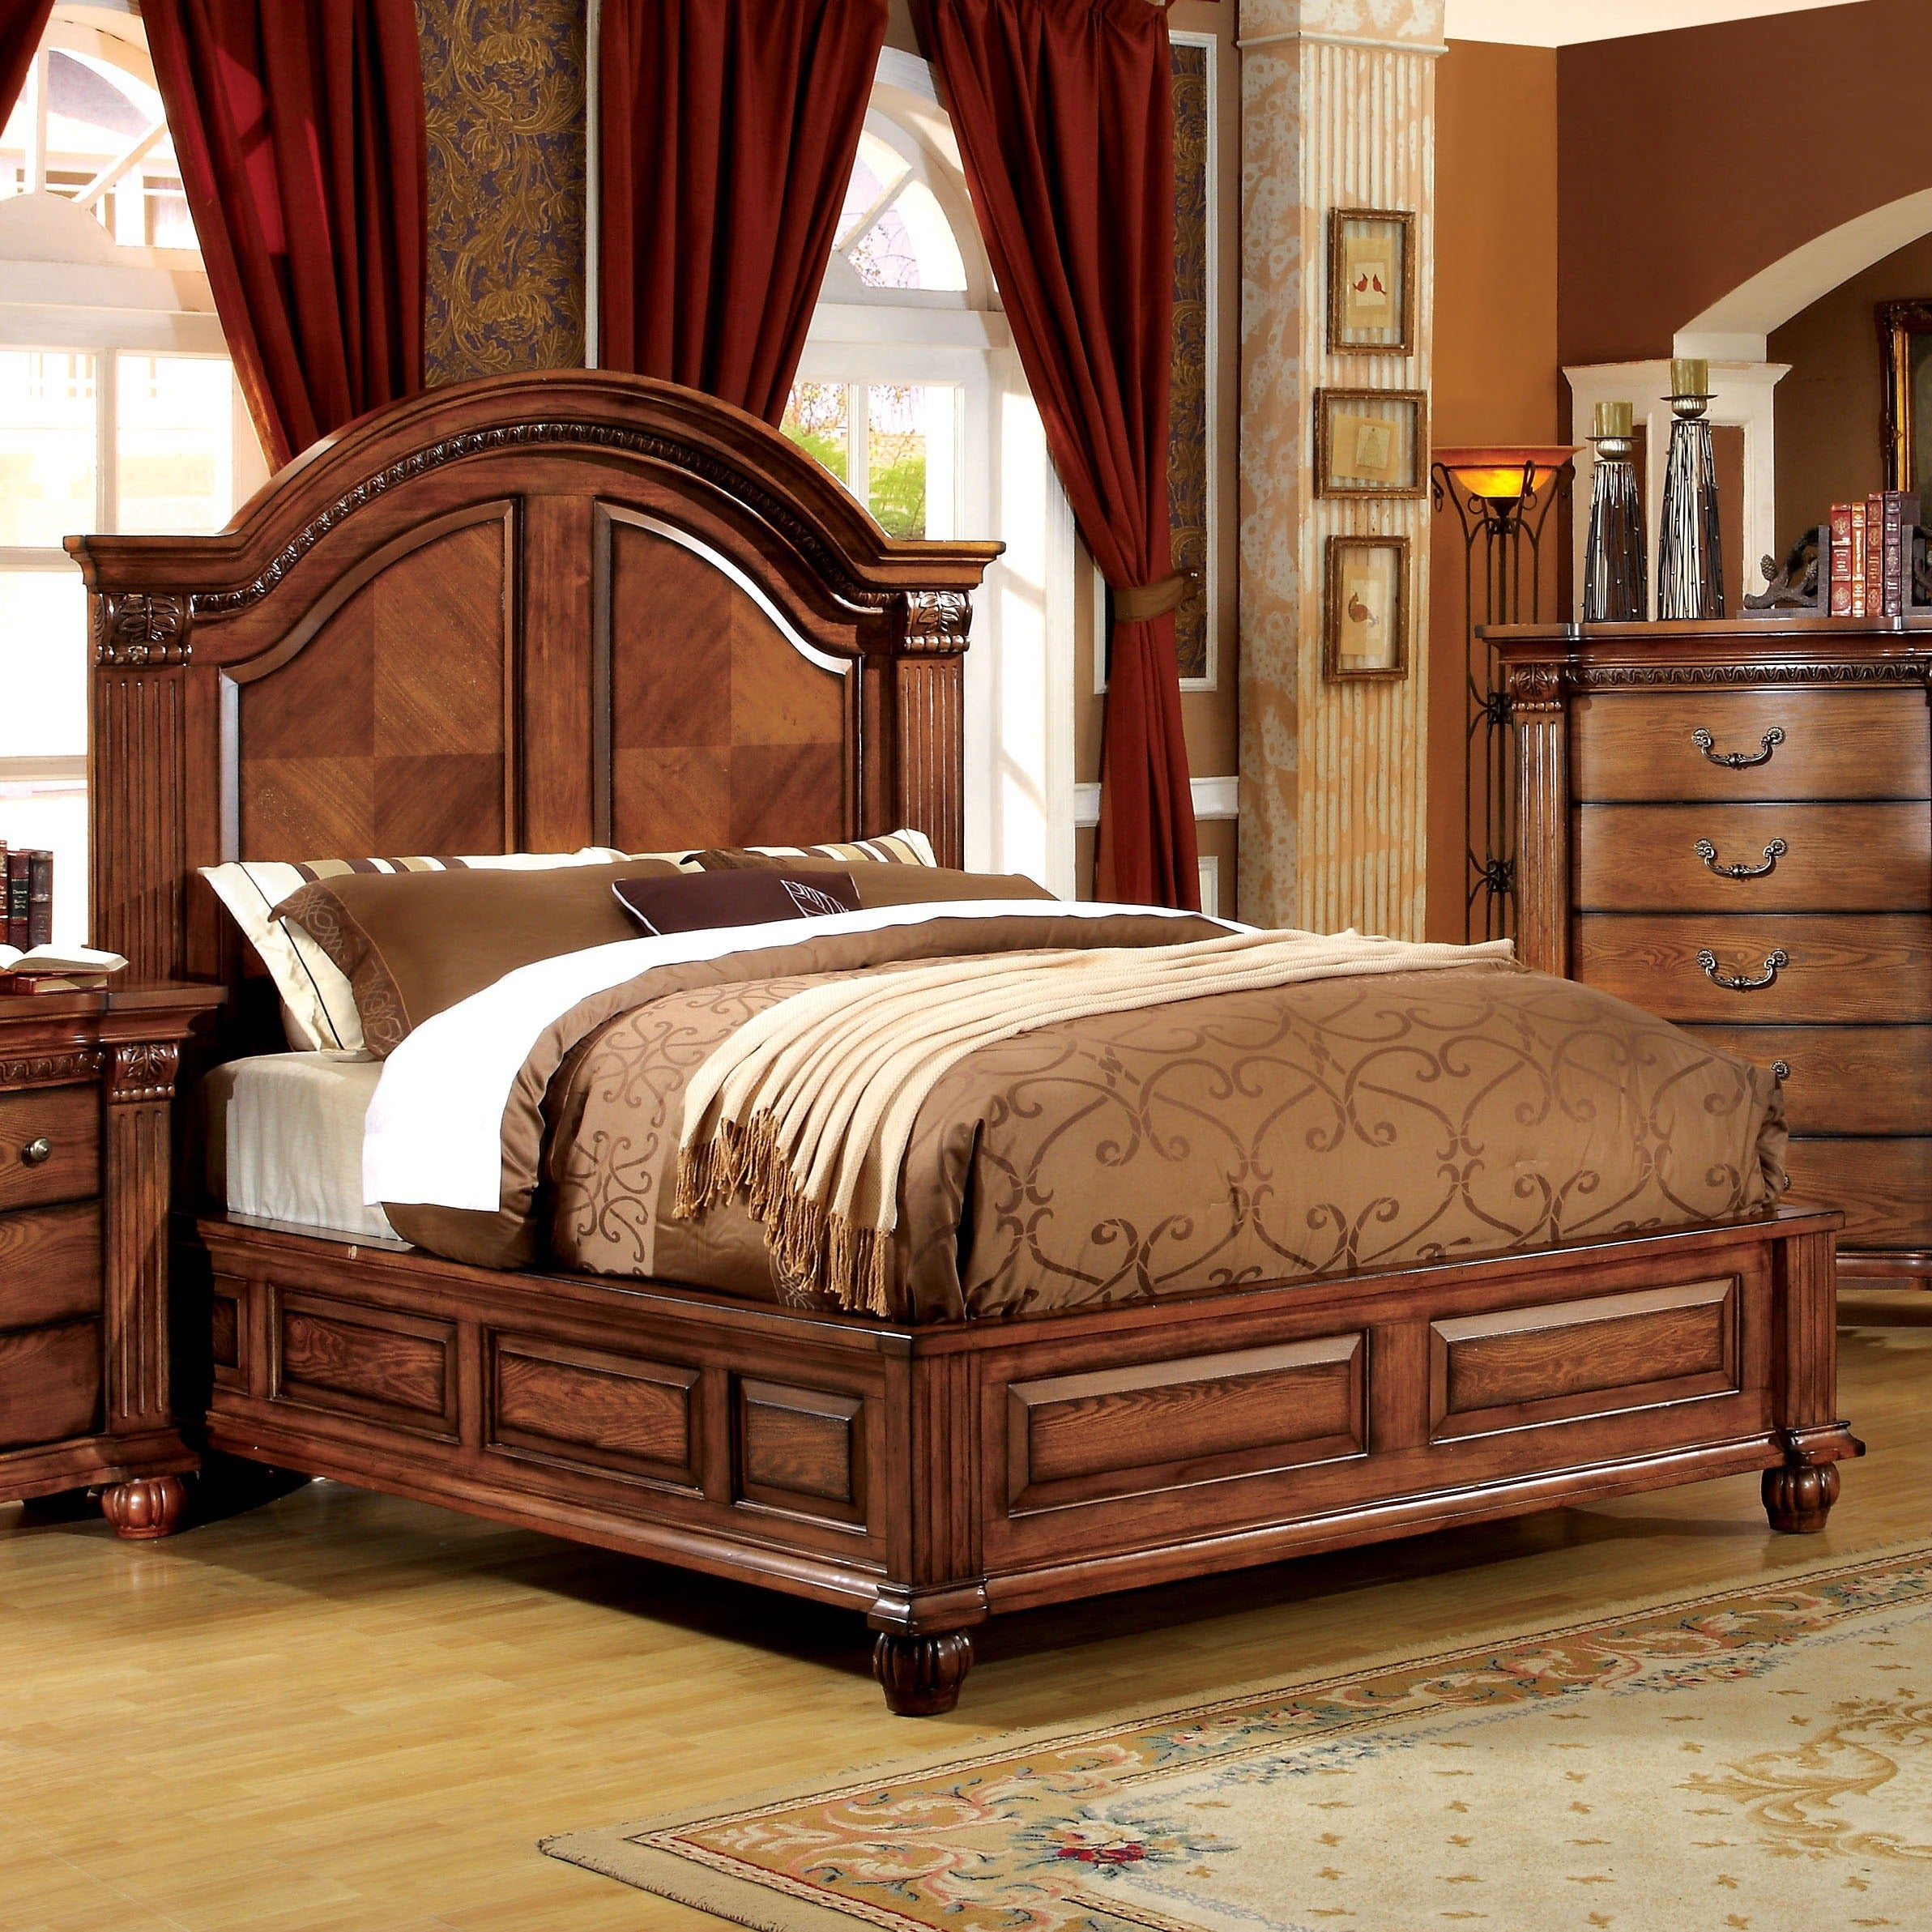 store design wooden beige floor american with and at beds bedroom ideas woodcrafters rugs style best woodcraft furniture contemporary for bunk your